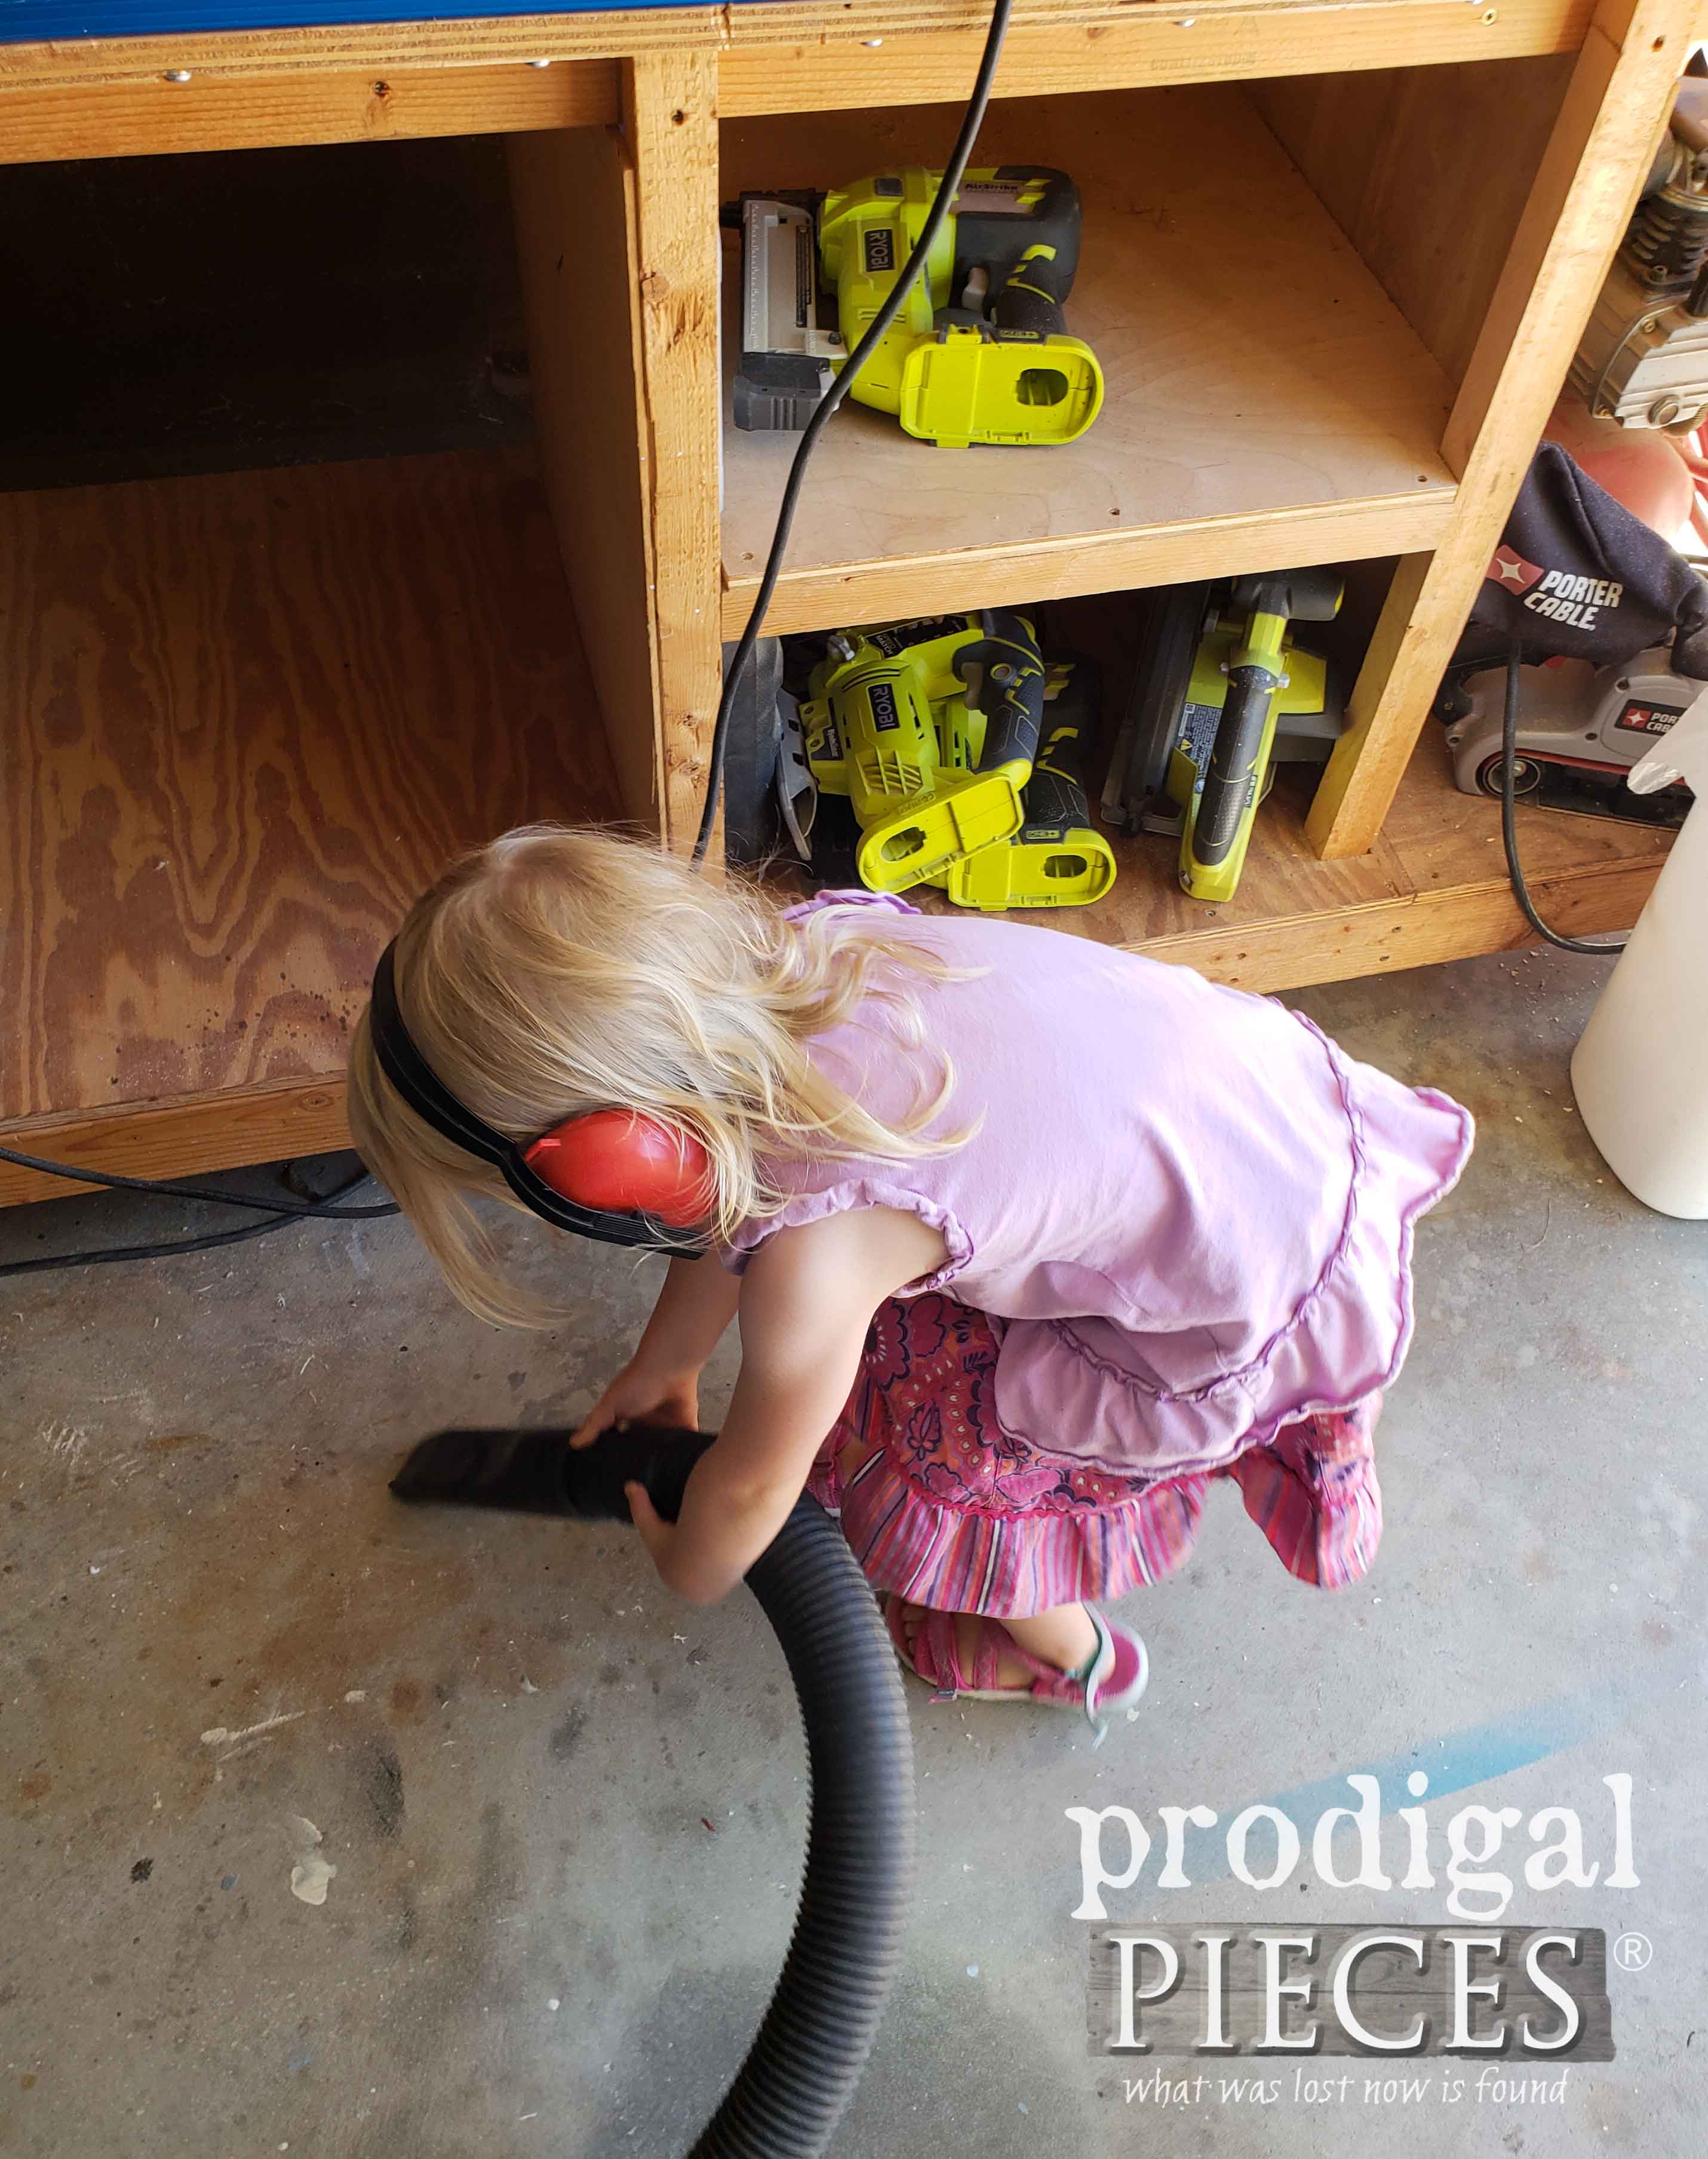 Toddler Cleaning Workshop with Shop Vacuum | prodigalpieces.com